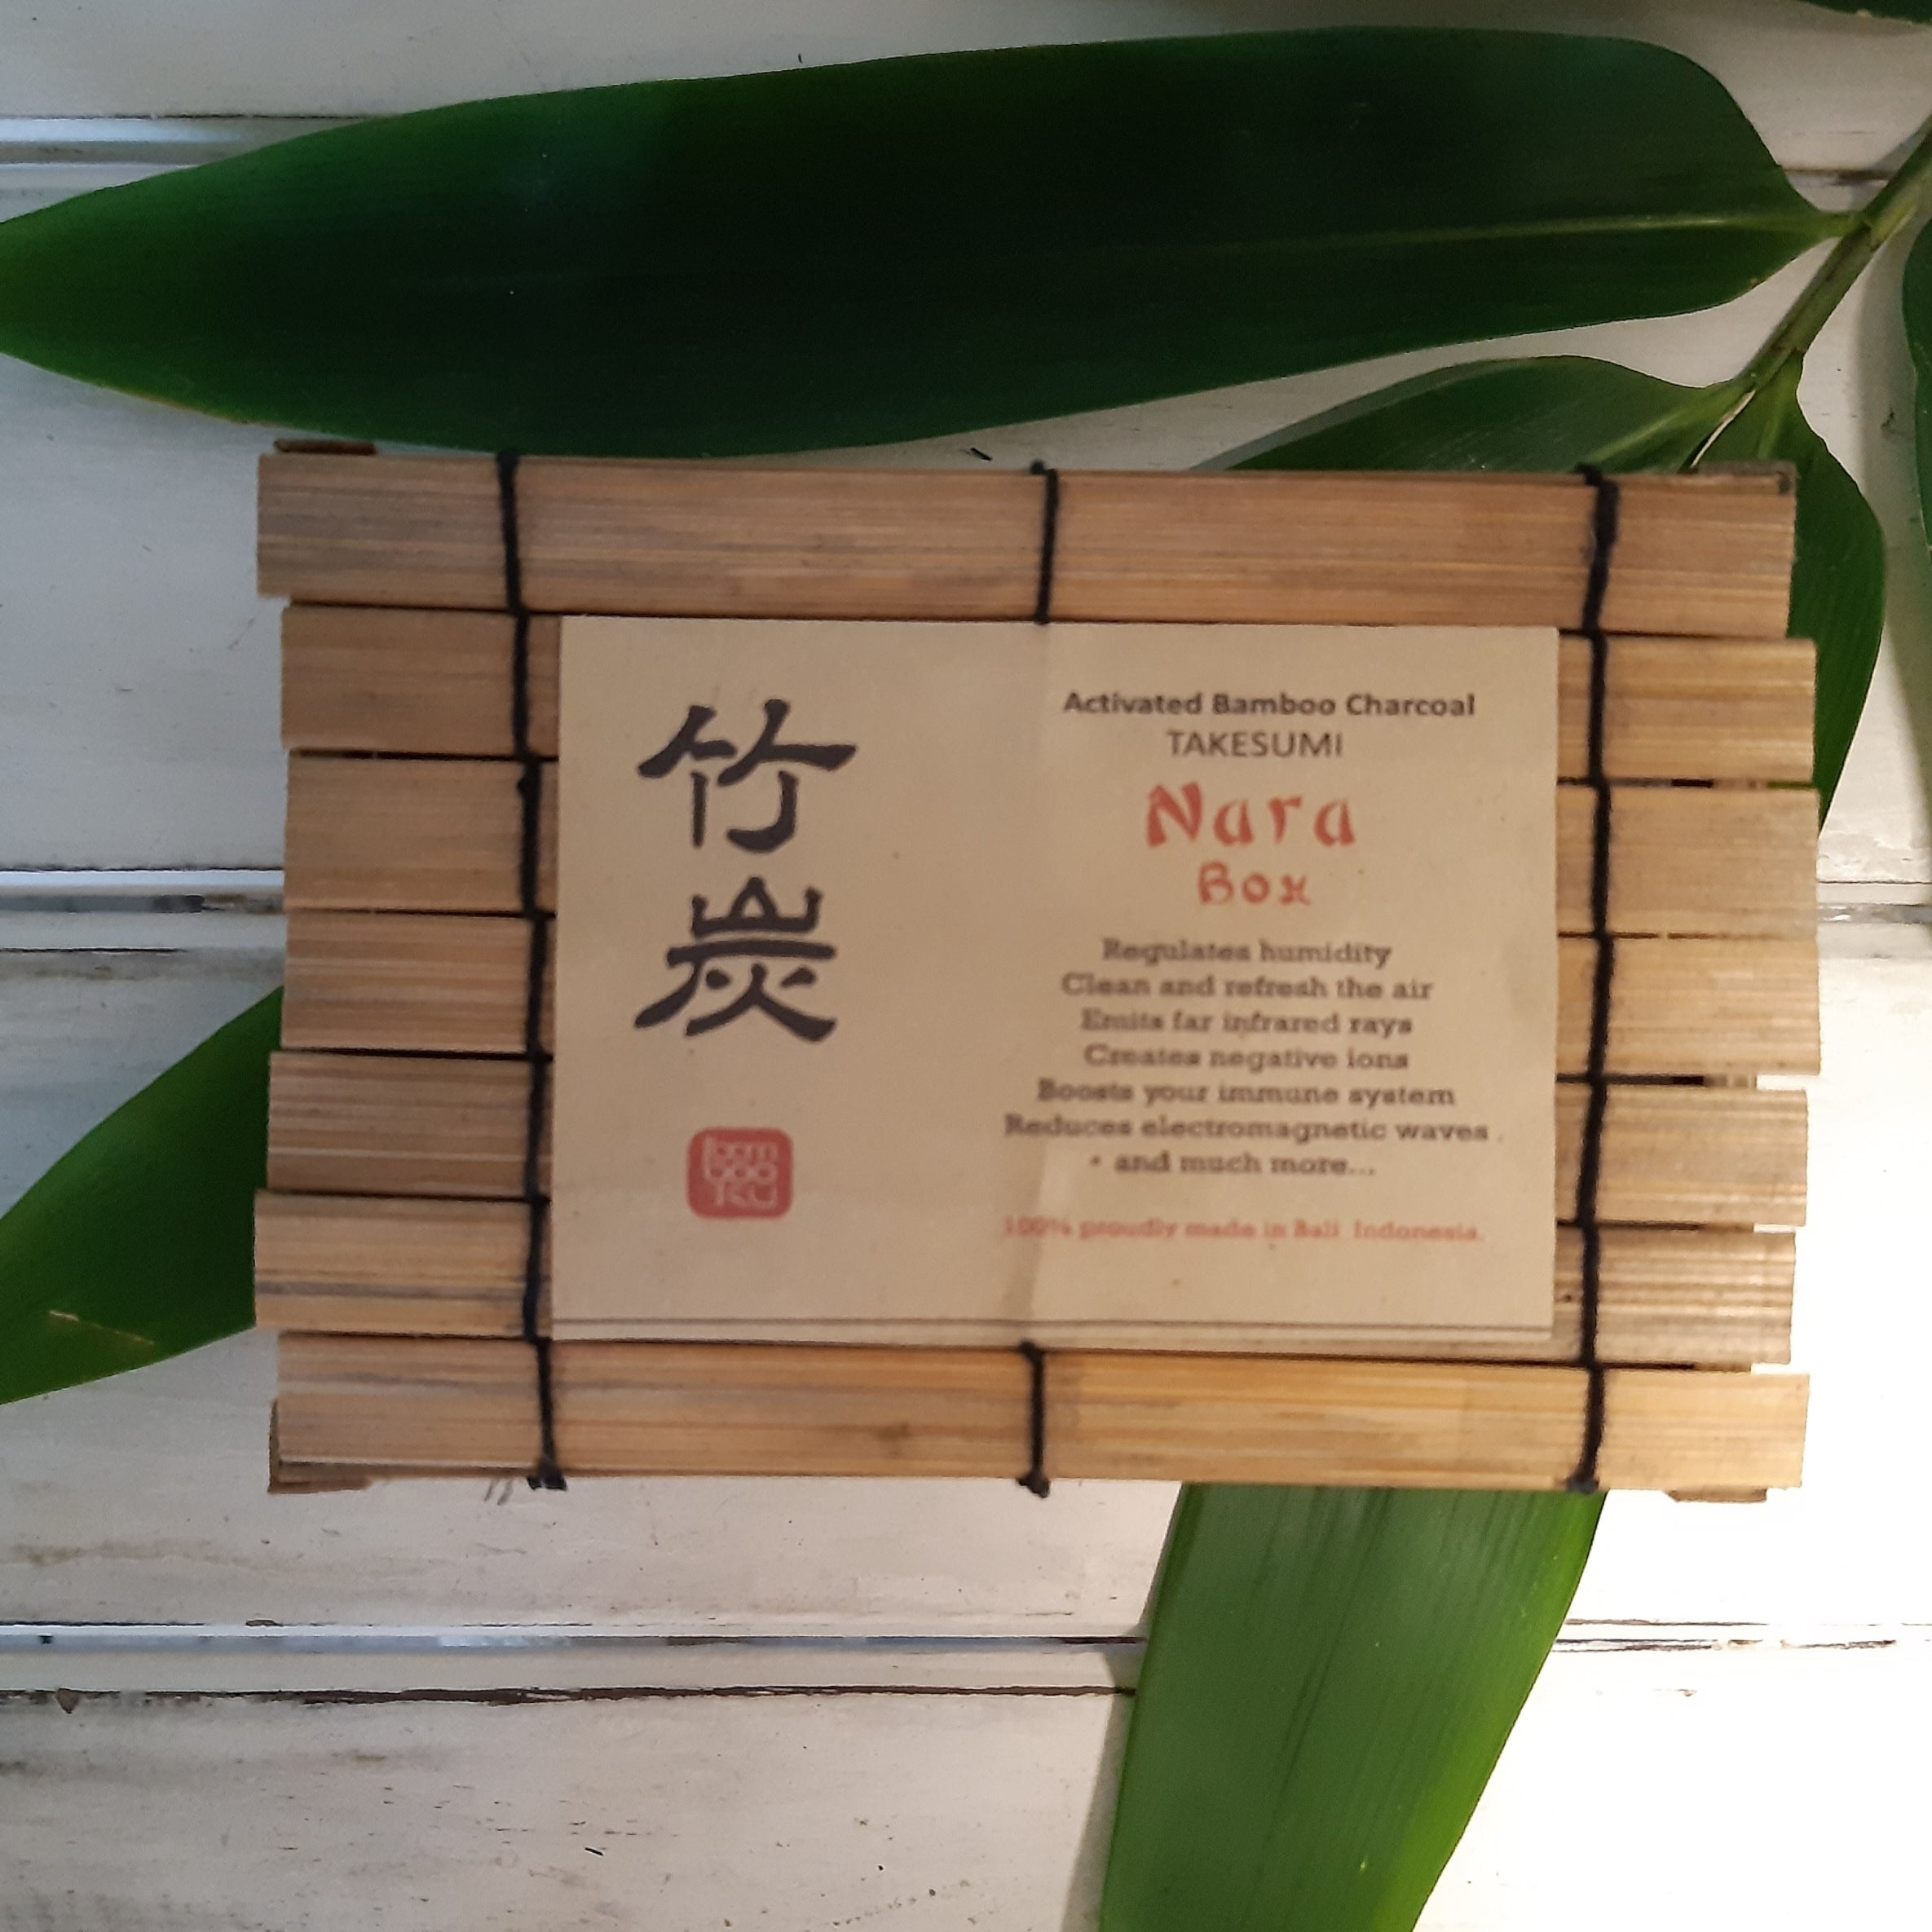 Takesumi Nara Box